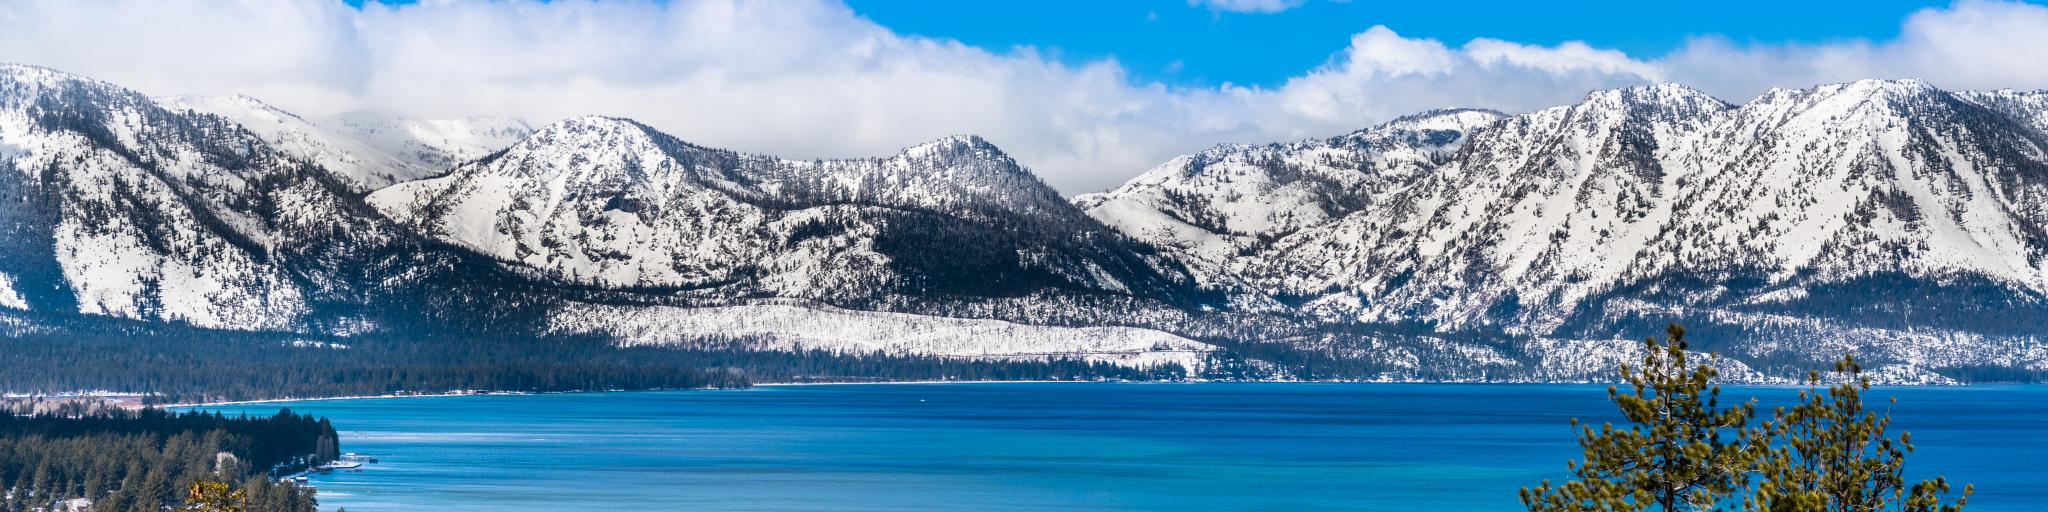 Snow capped Sierra Nevada Mountains behind Lake Tahoe, California